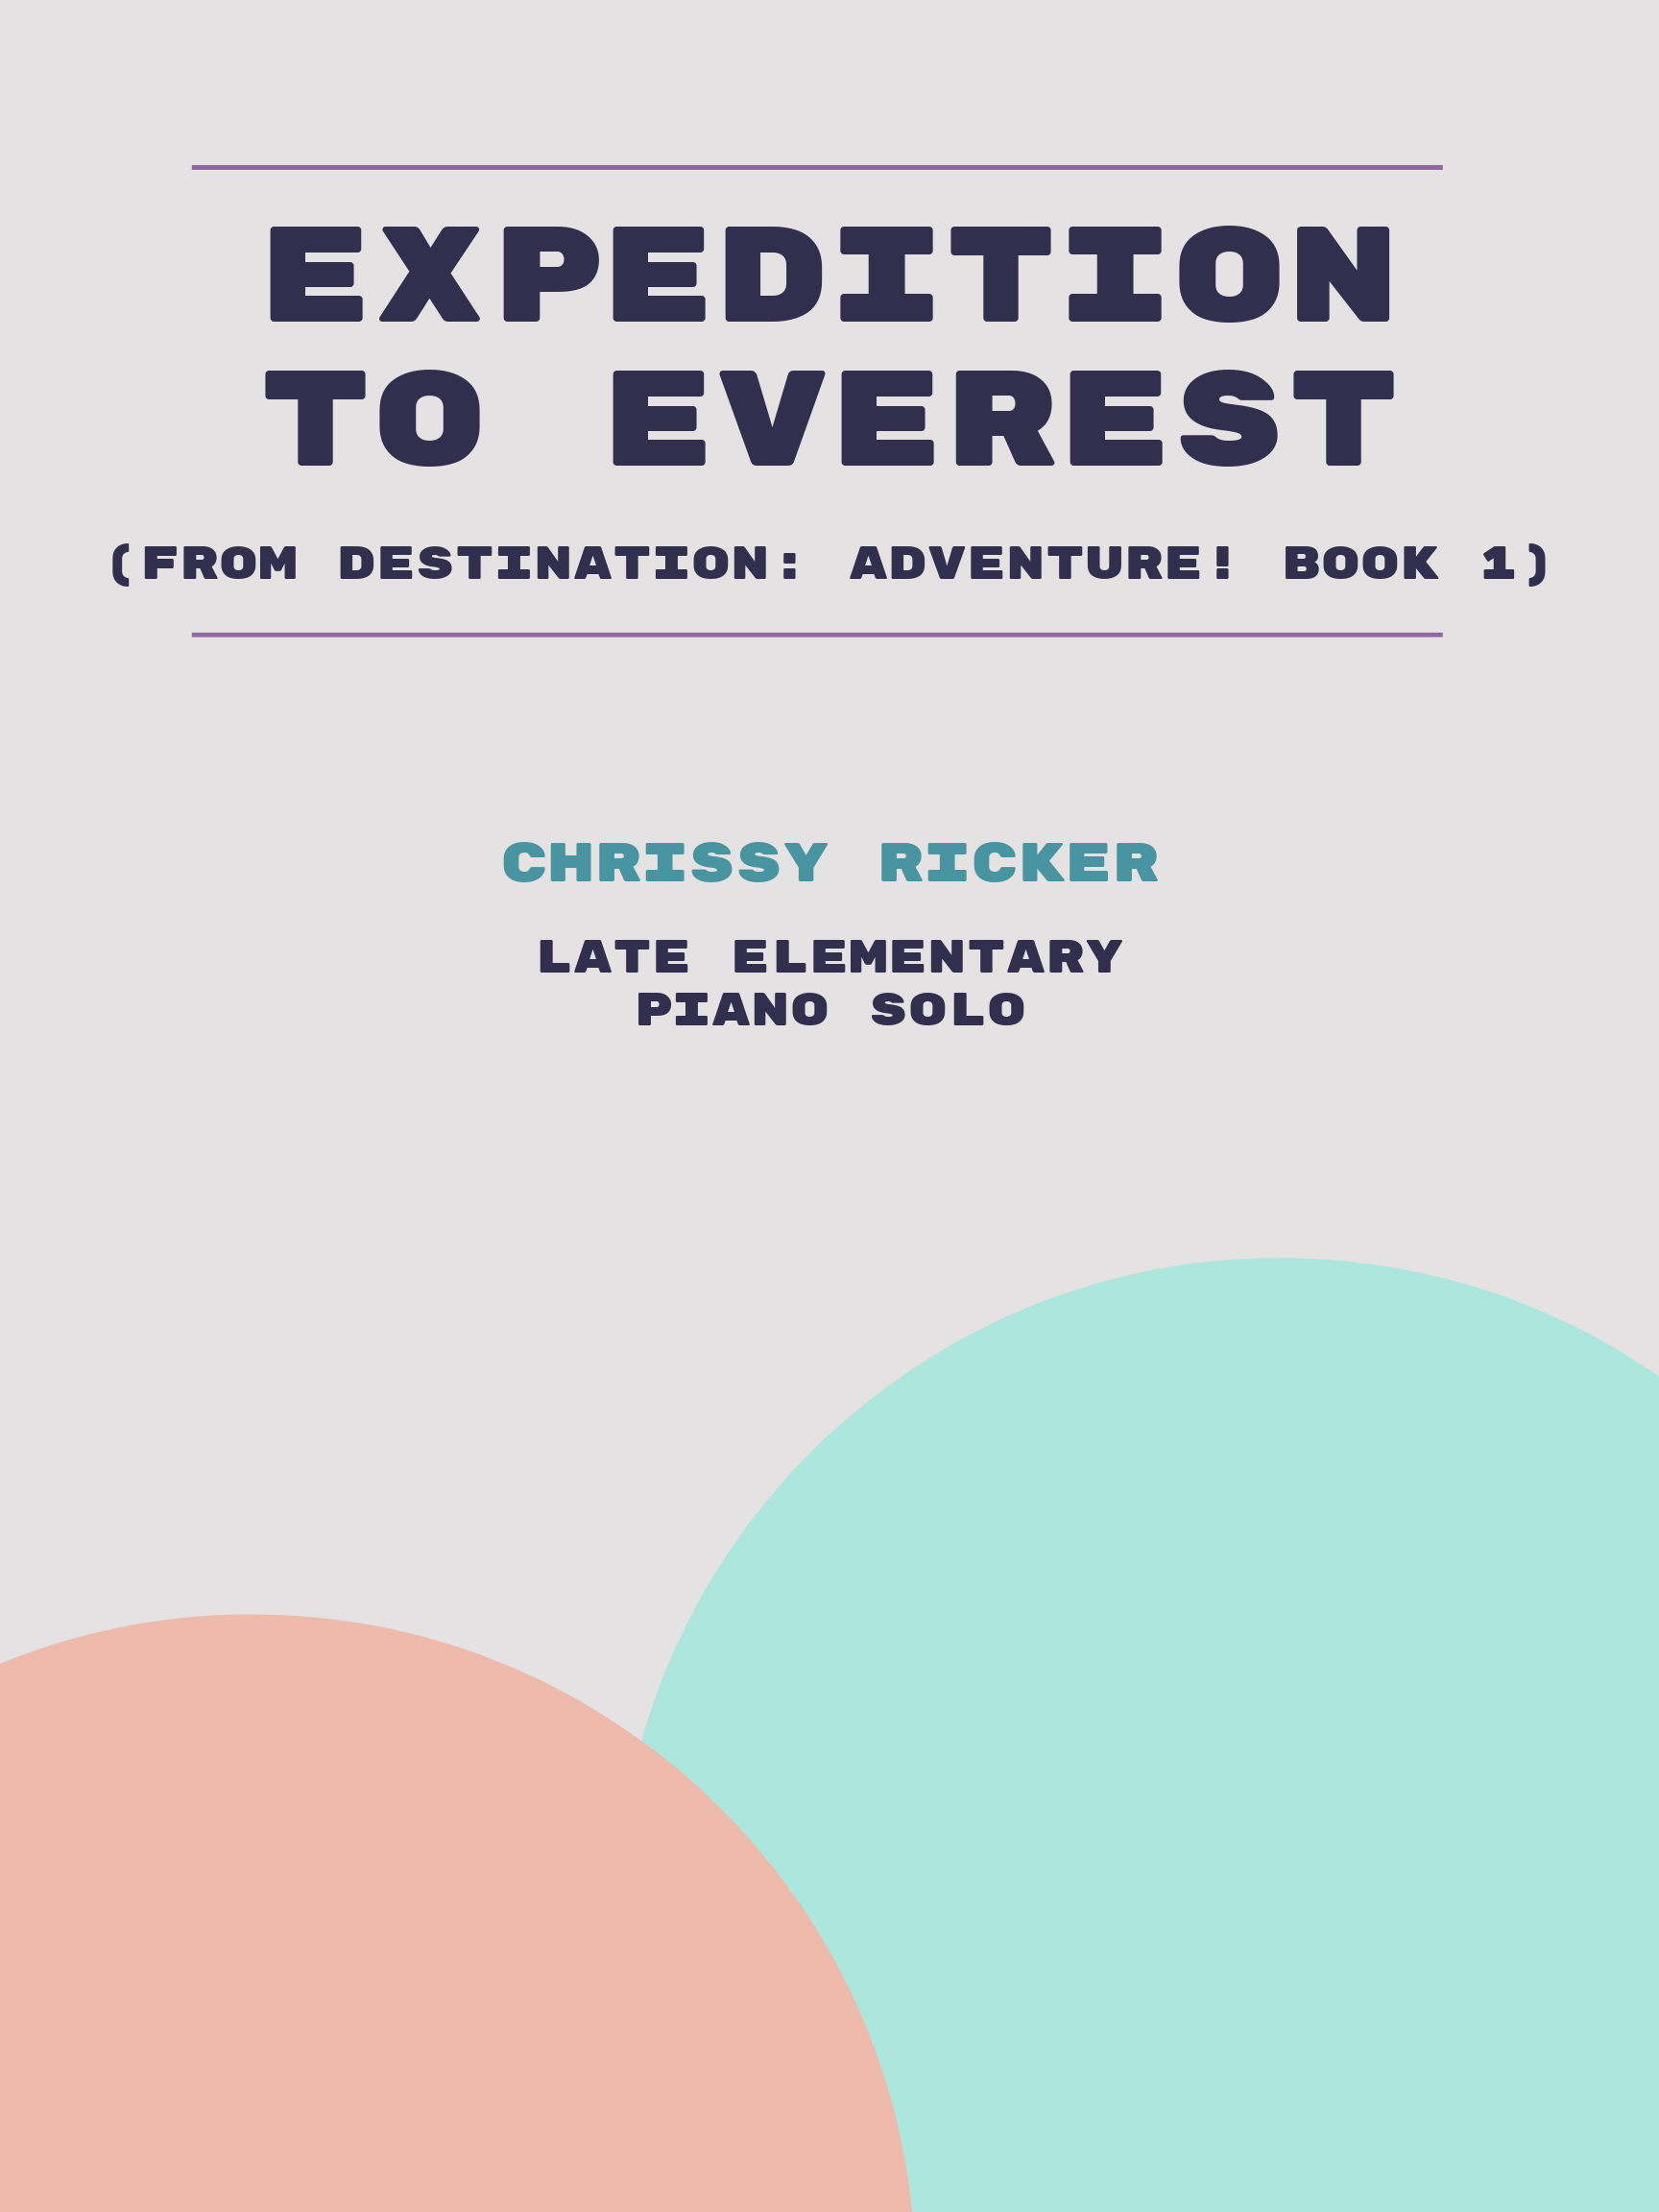 Expedition to Everest by Chrissy Ricker